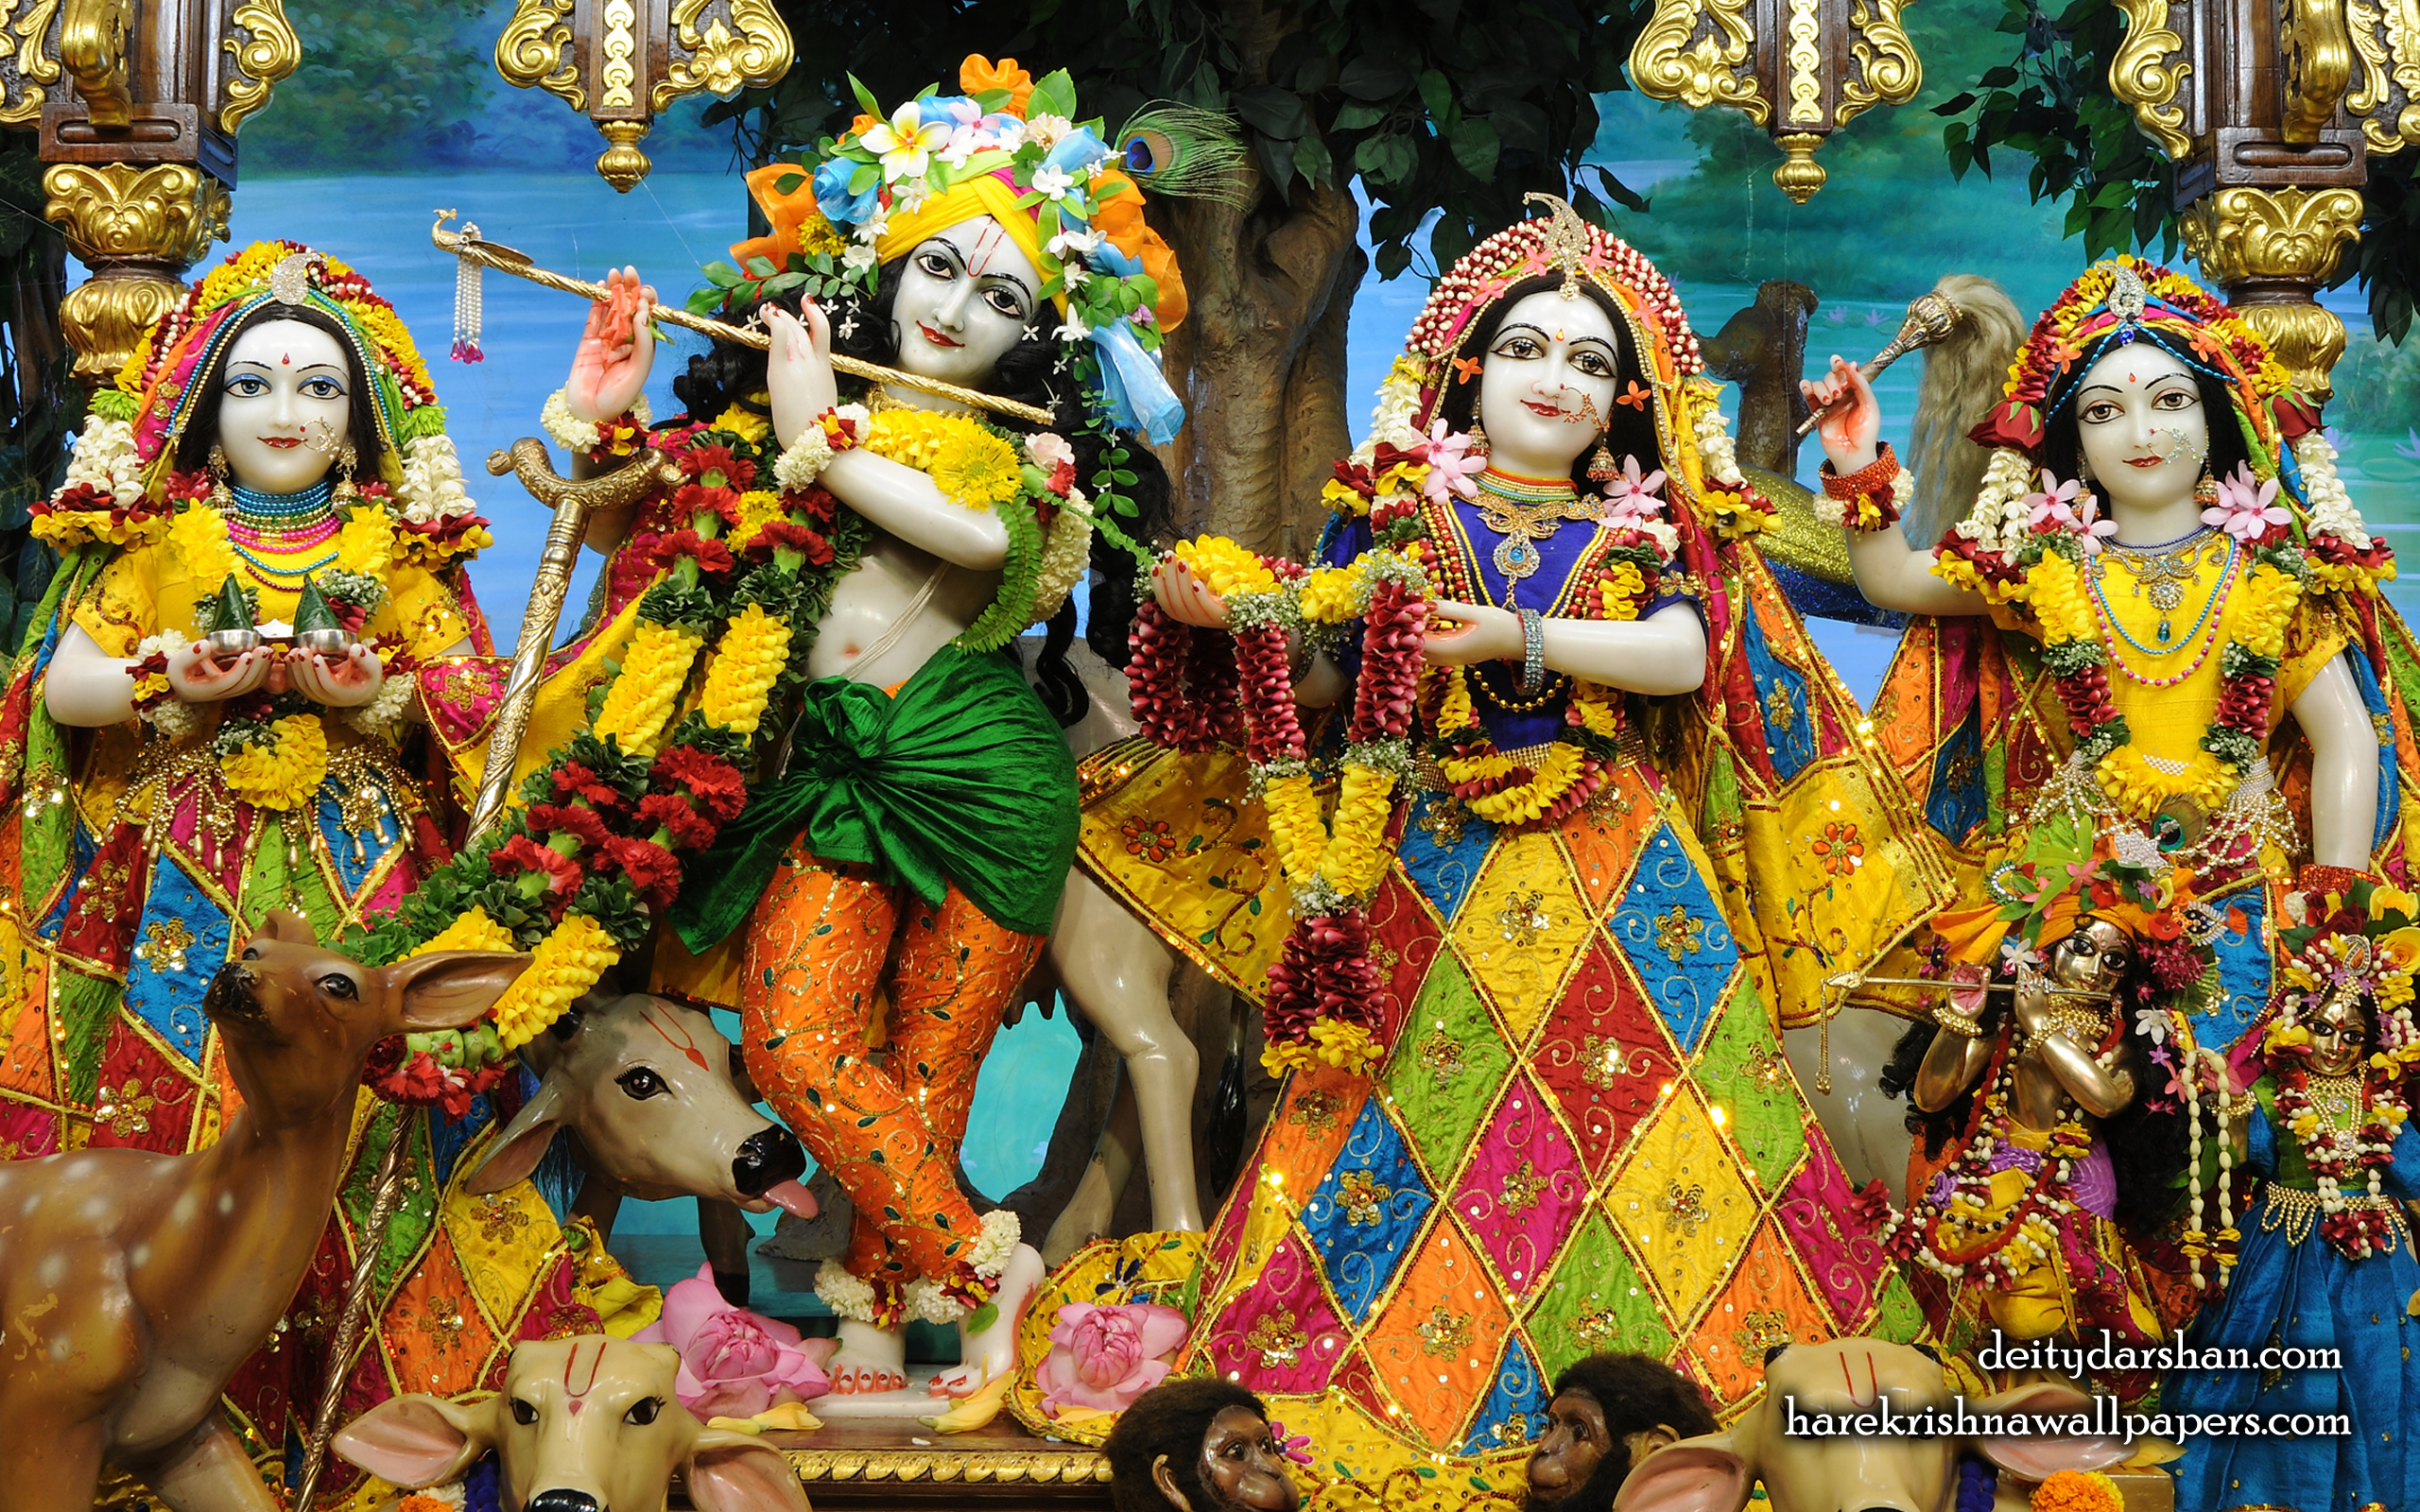 Sri Sri Radha Gopinath Lalita Vishakha Wallpaper (068) Size 2560x1600 Download